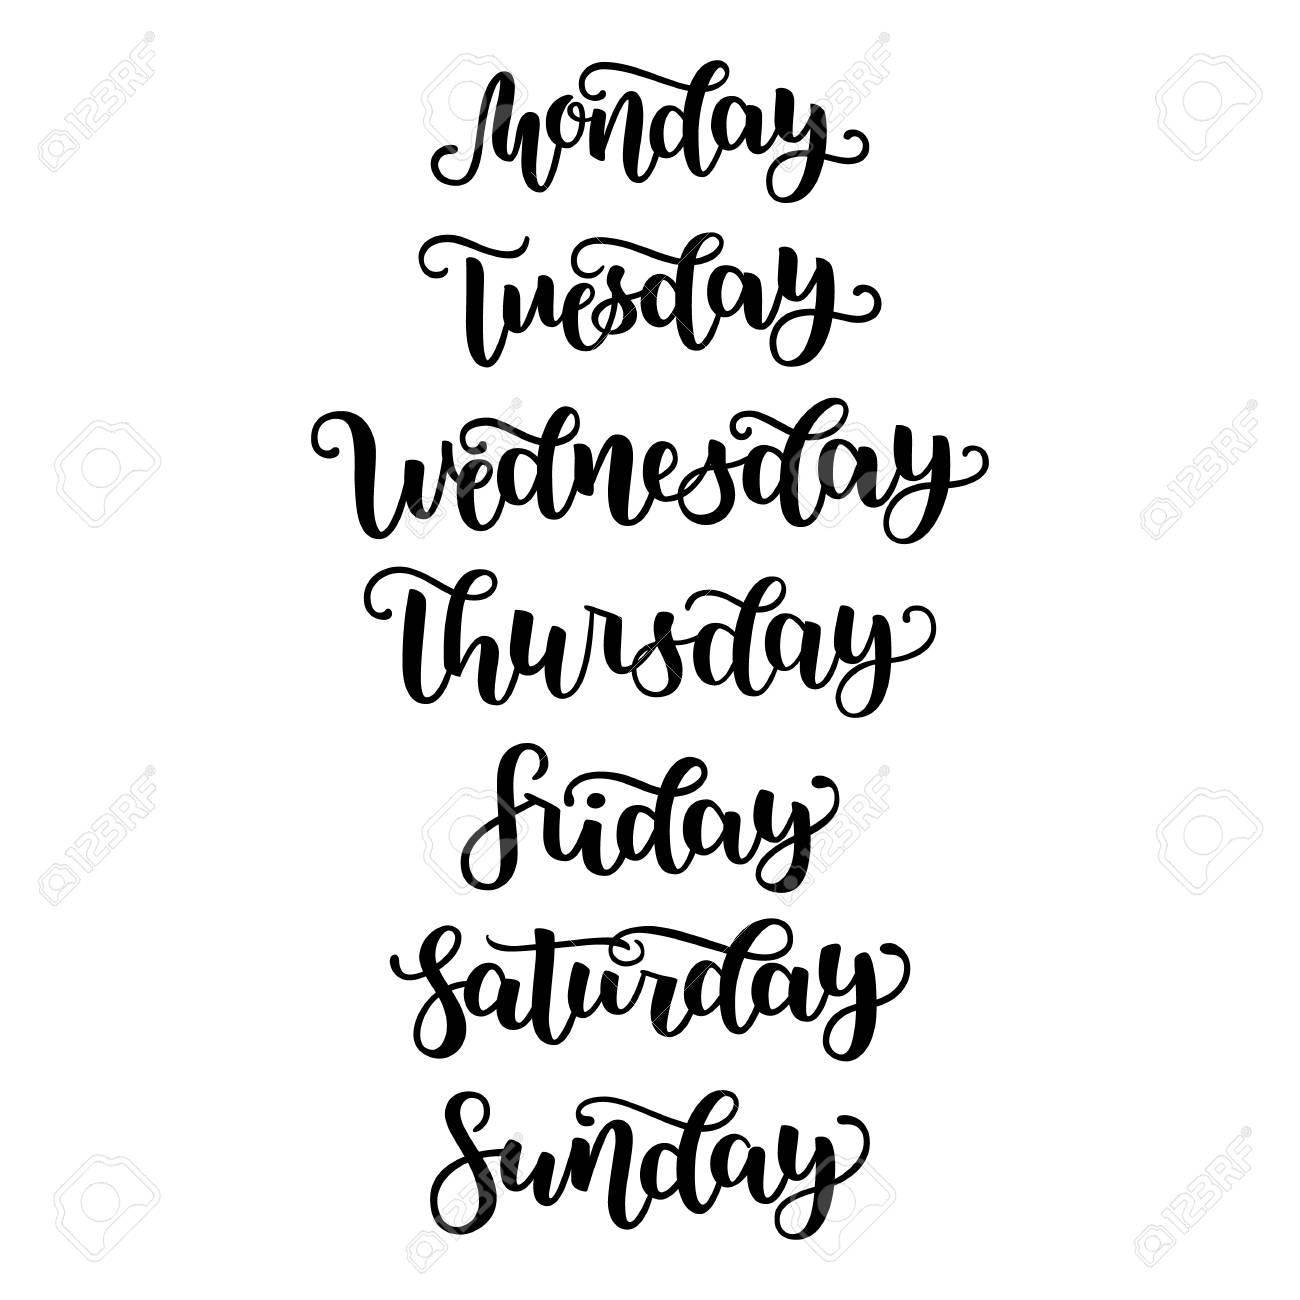 ac6c3e46f8 Hand Lettering Days Of Week Sunday